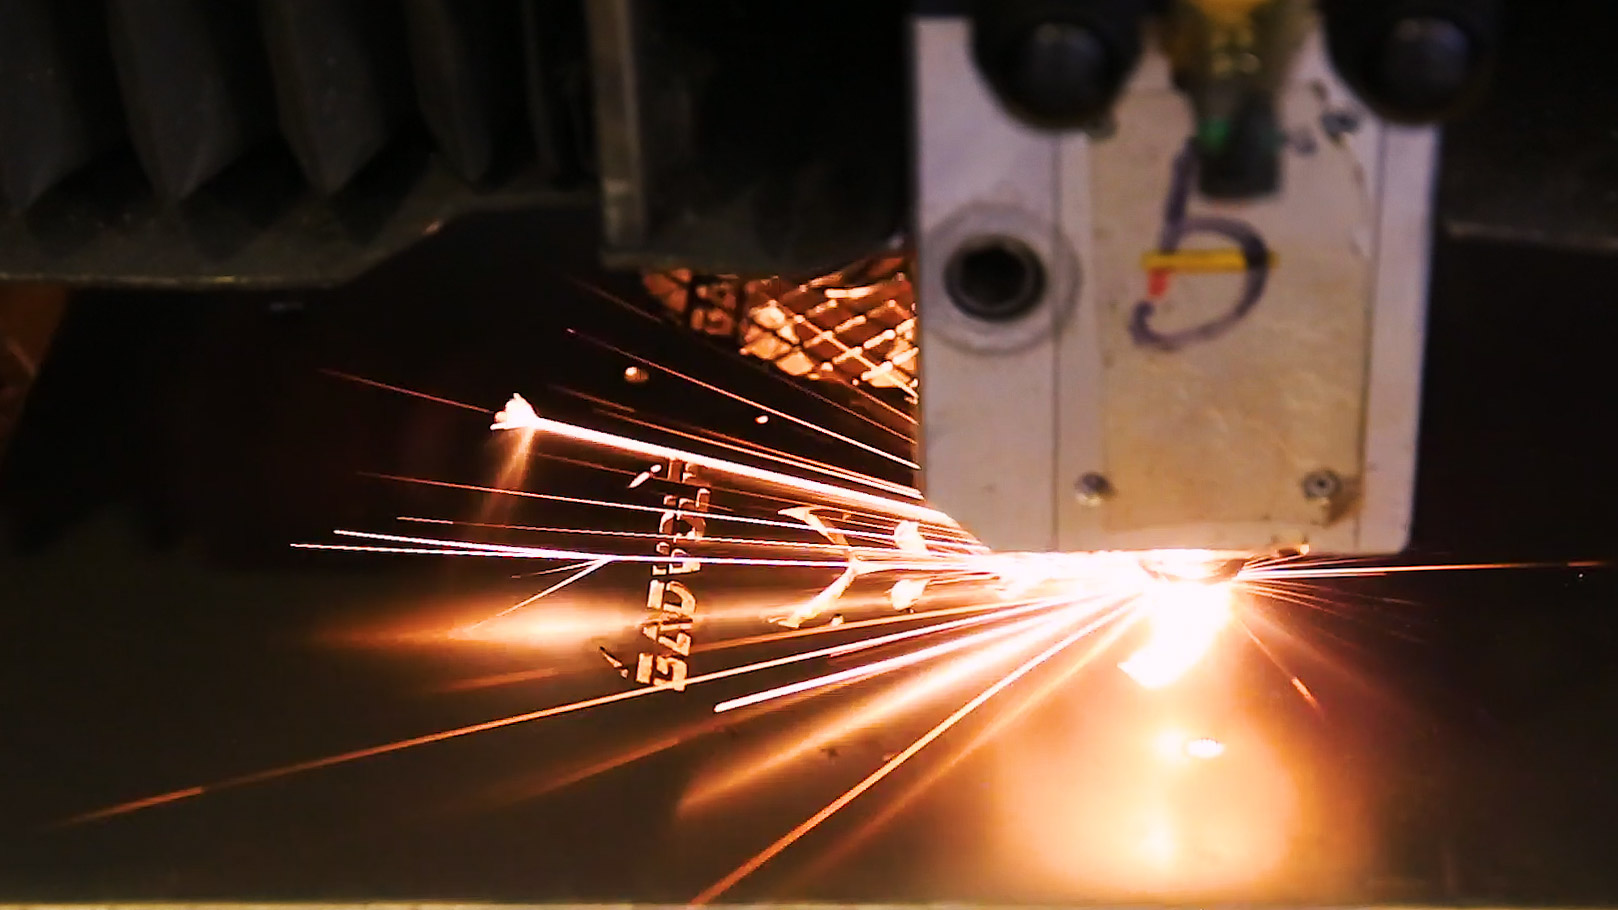 Perfolux metal fabrication, laser cutting